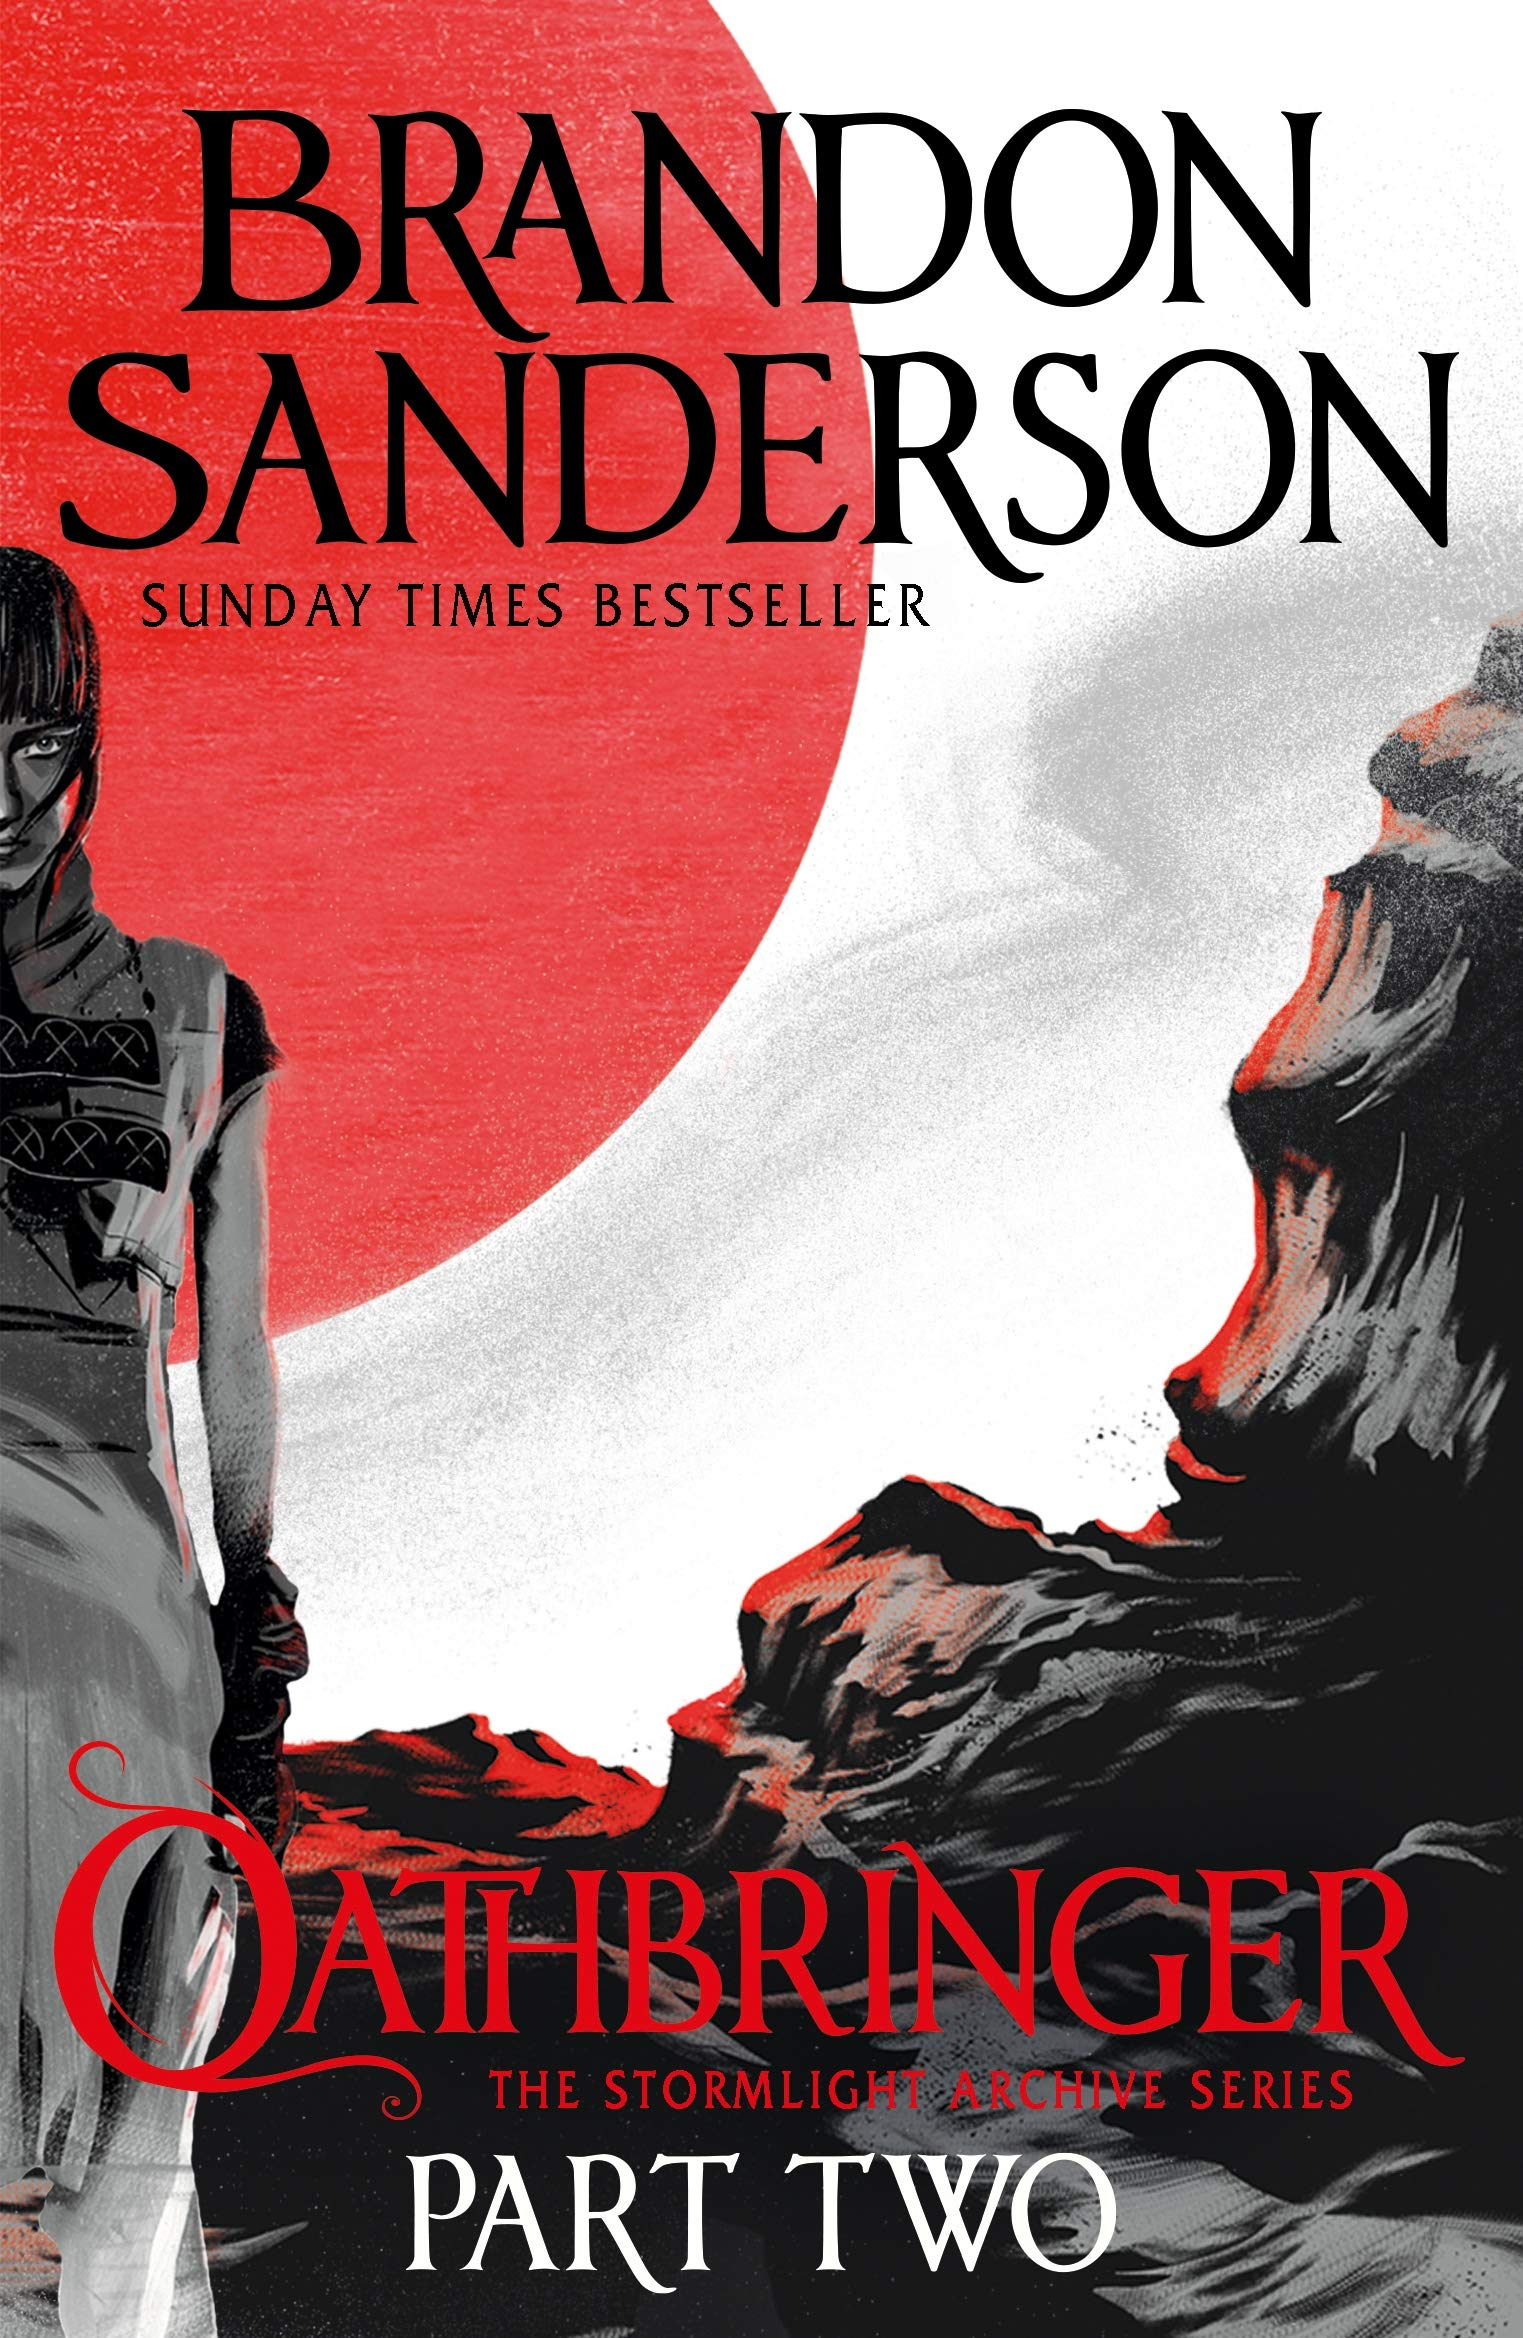 OATHBRINGER PART TWO